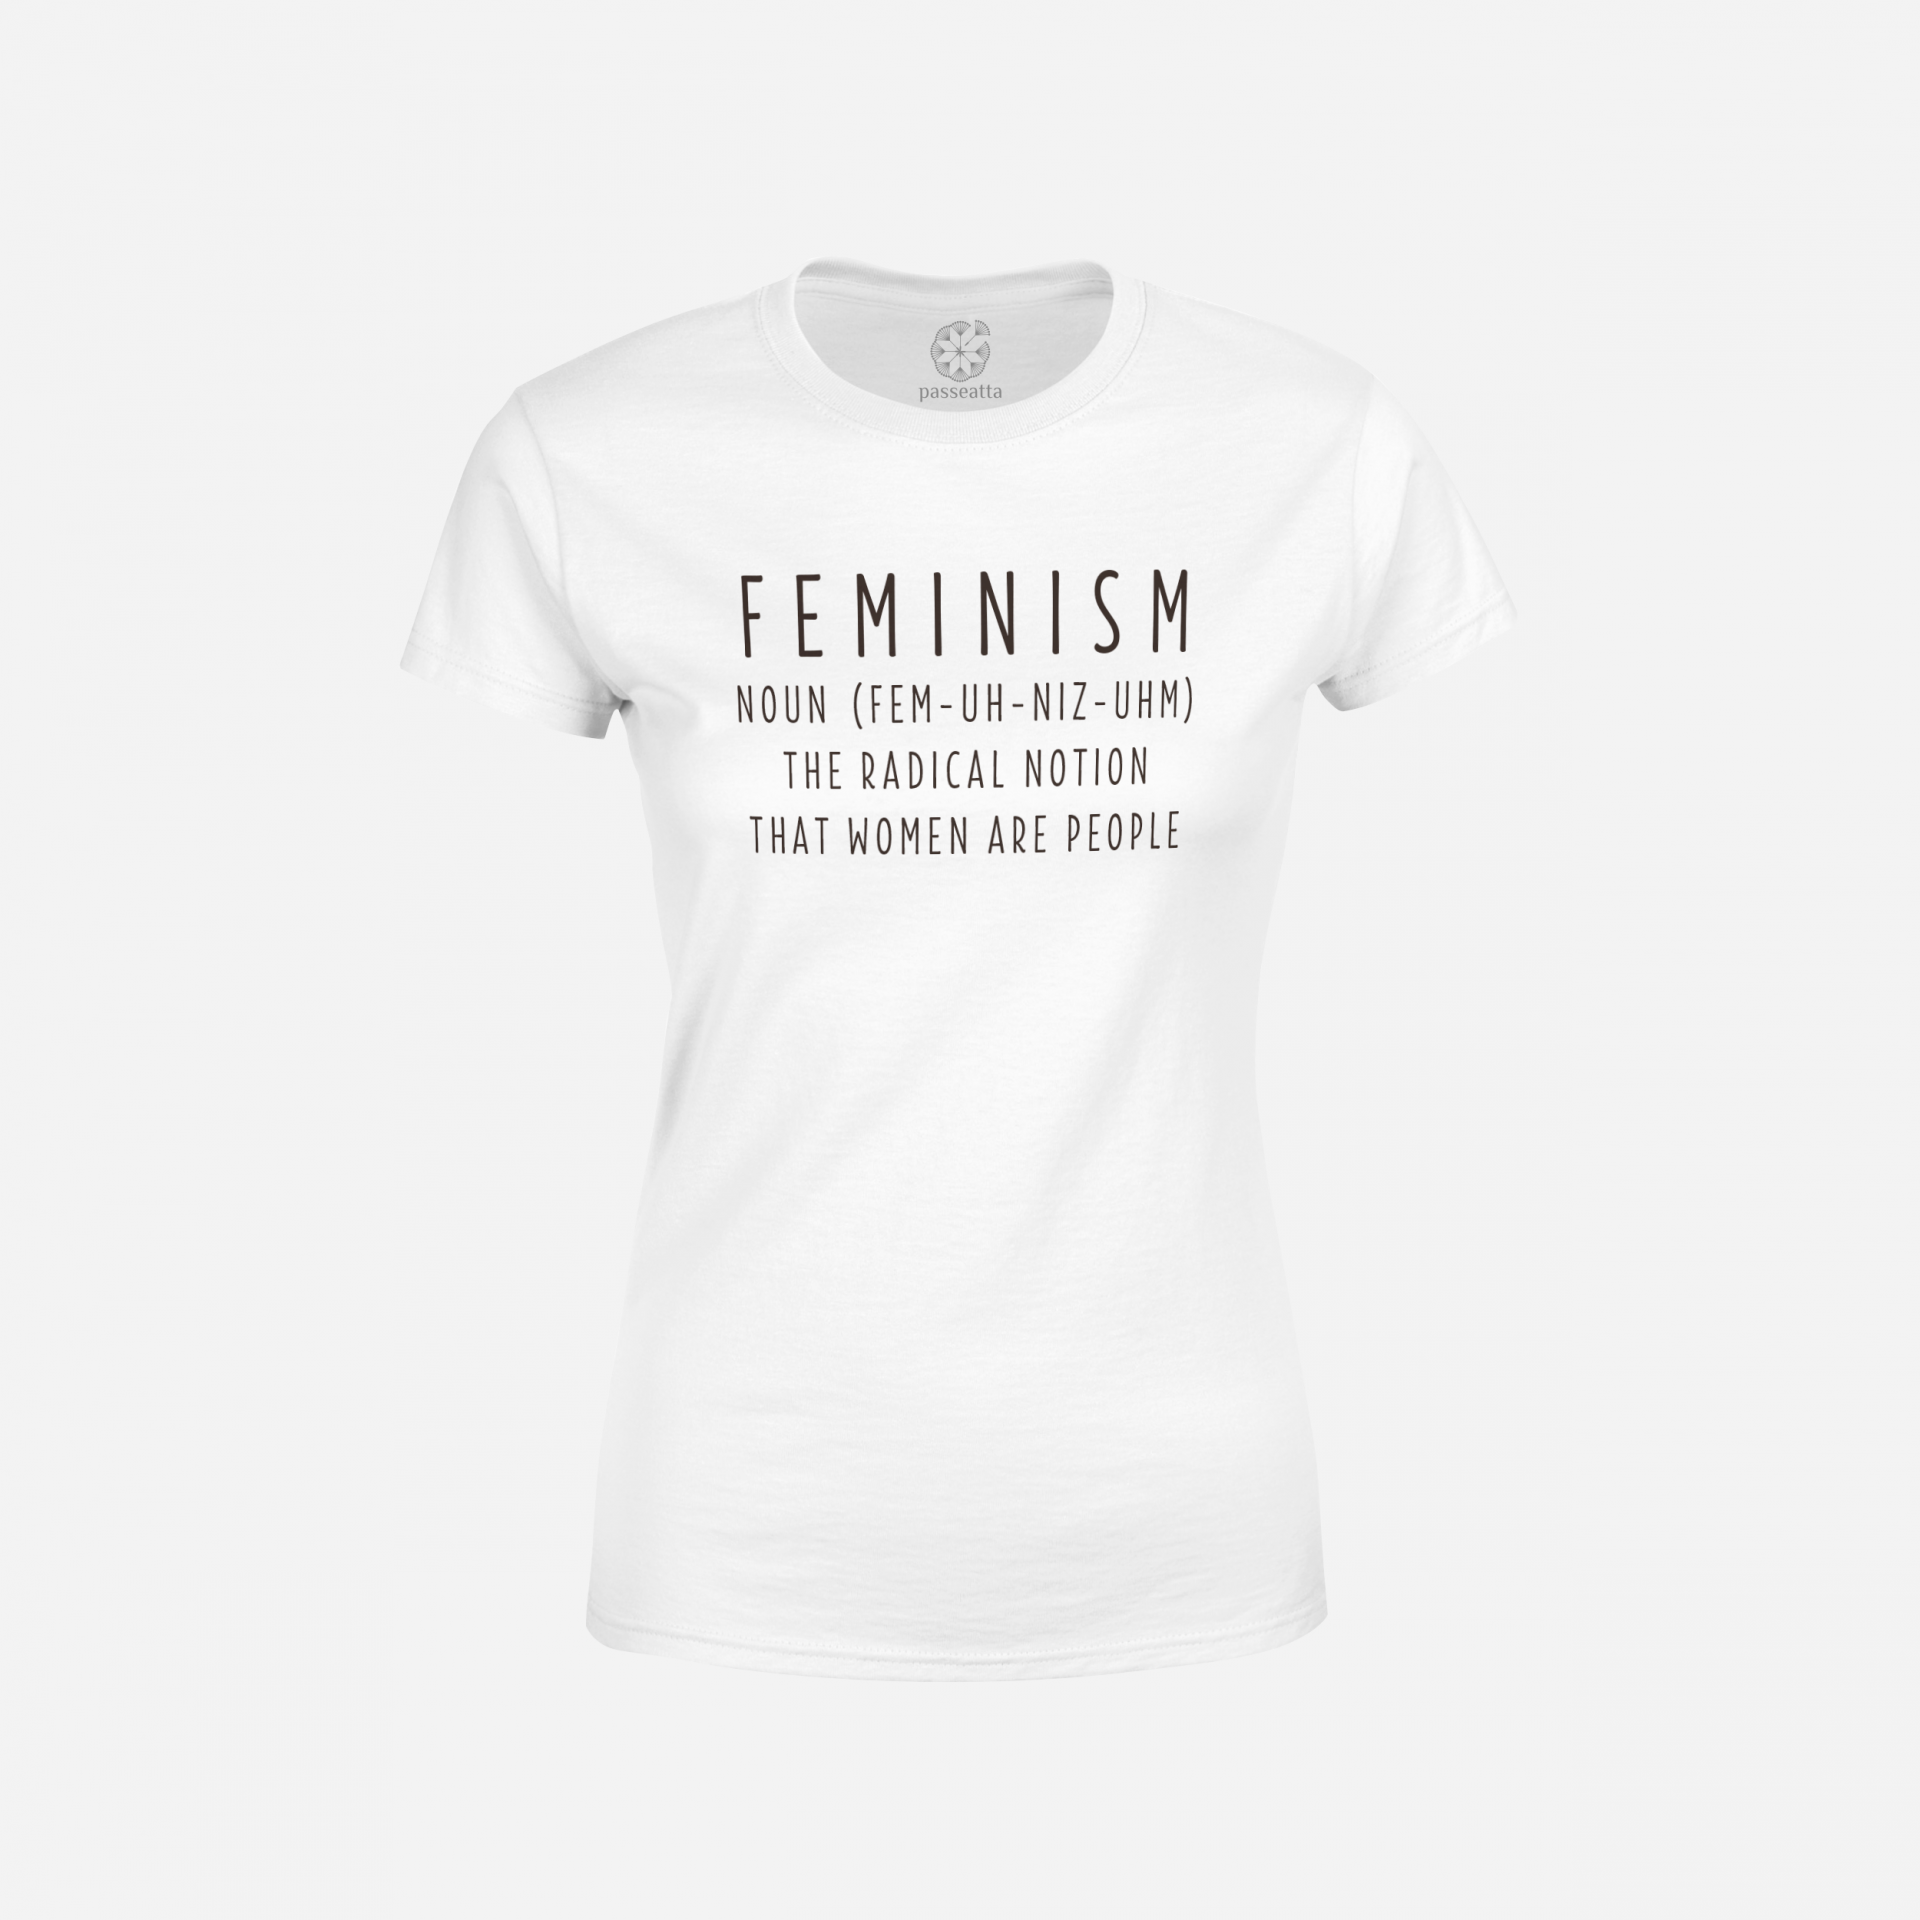 Feminism - The Radical Notion that Women Are People